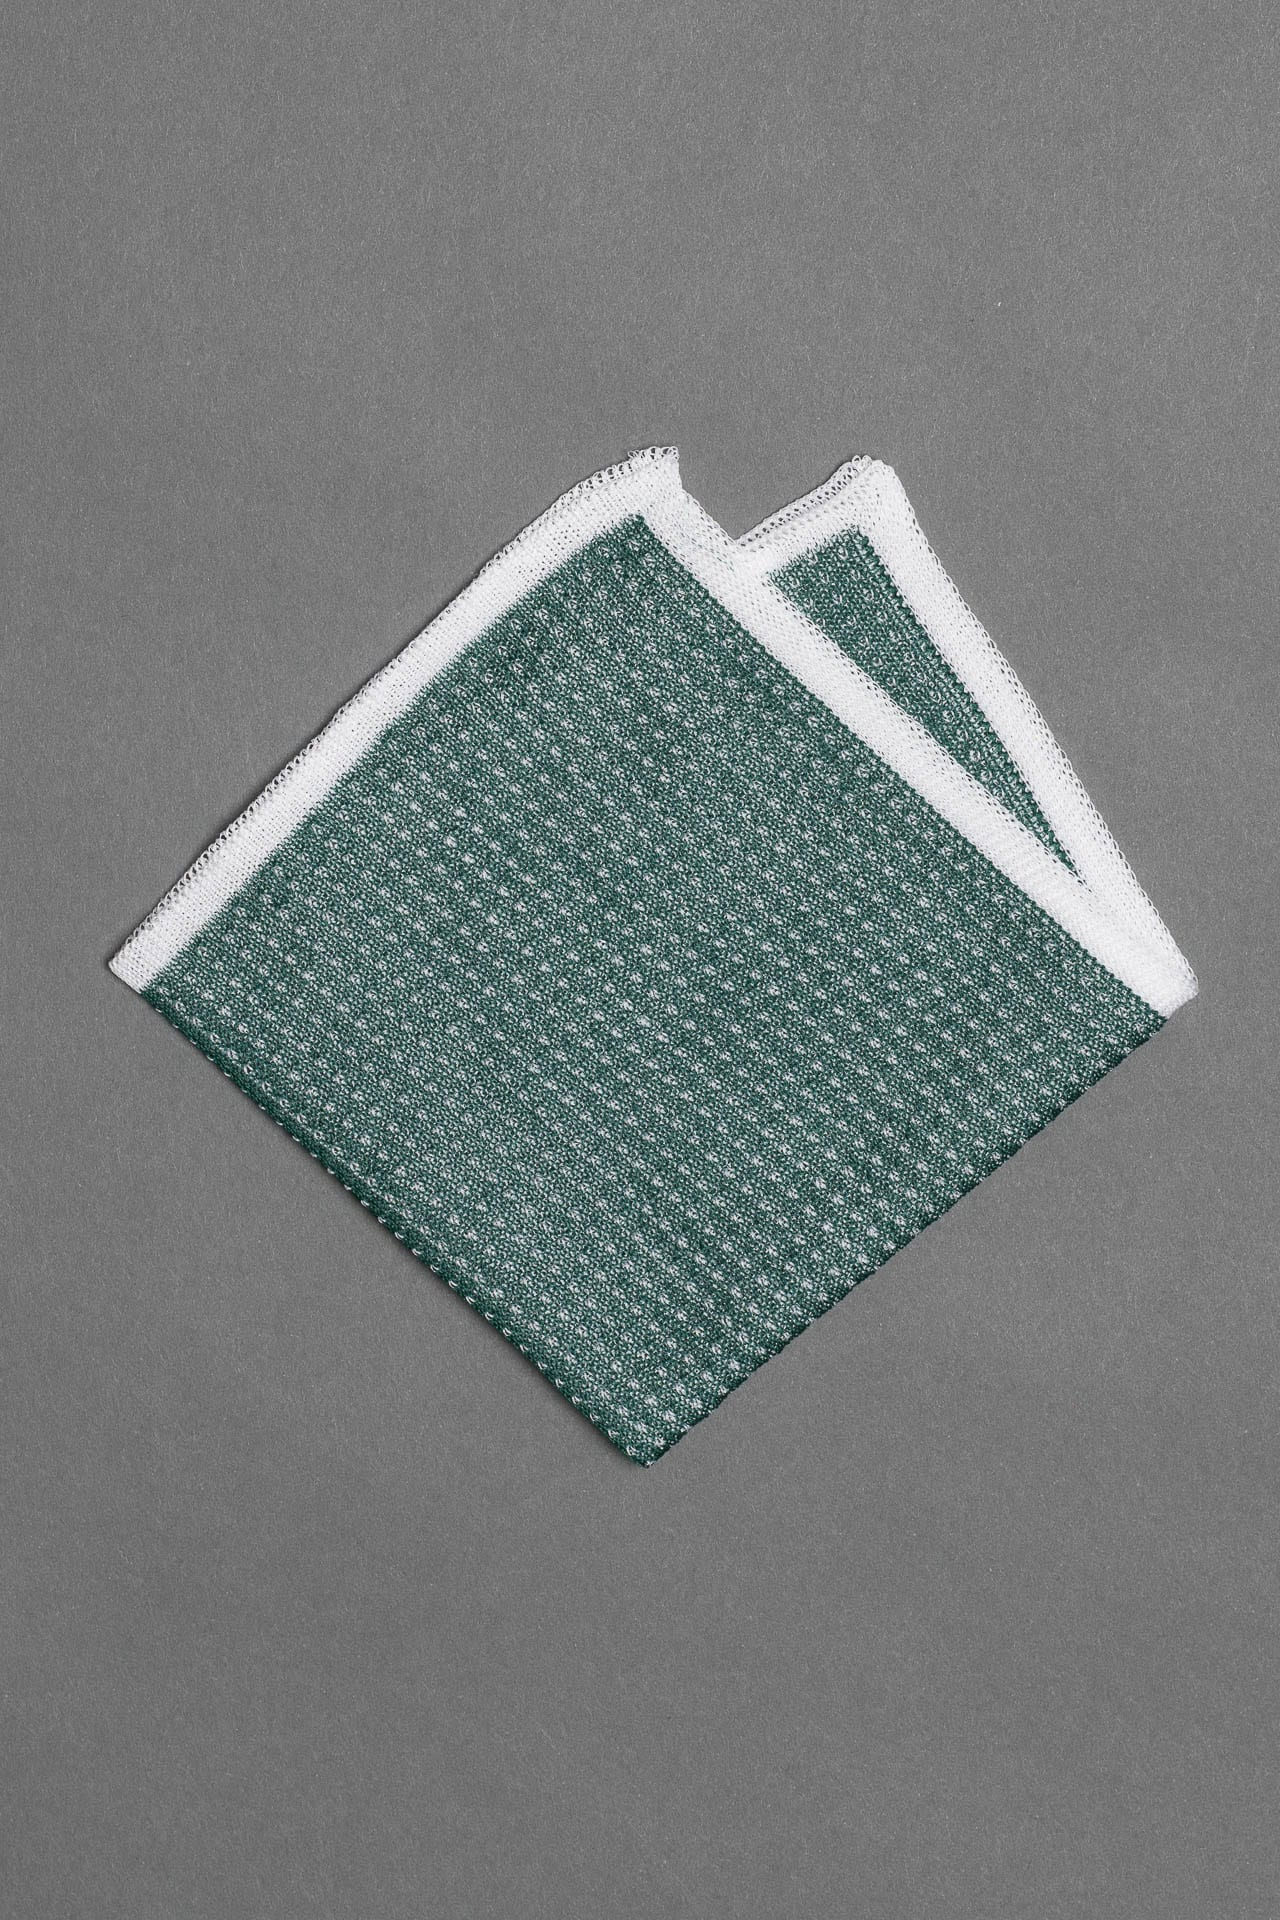 cotton-knitted-pocket-square-green-with-white-frame-and-dots-made-in-italy